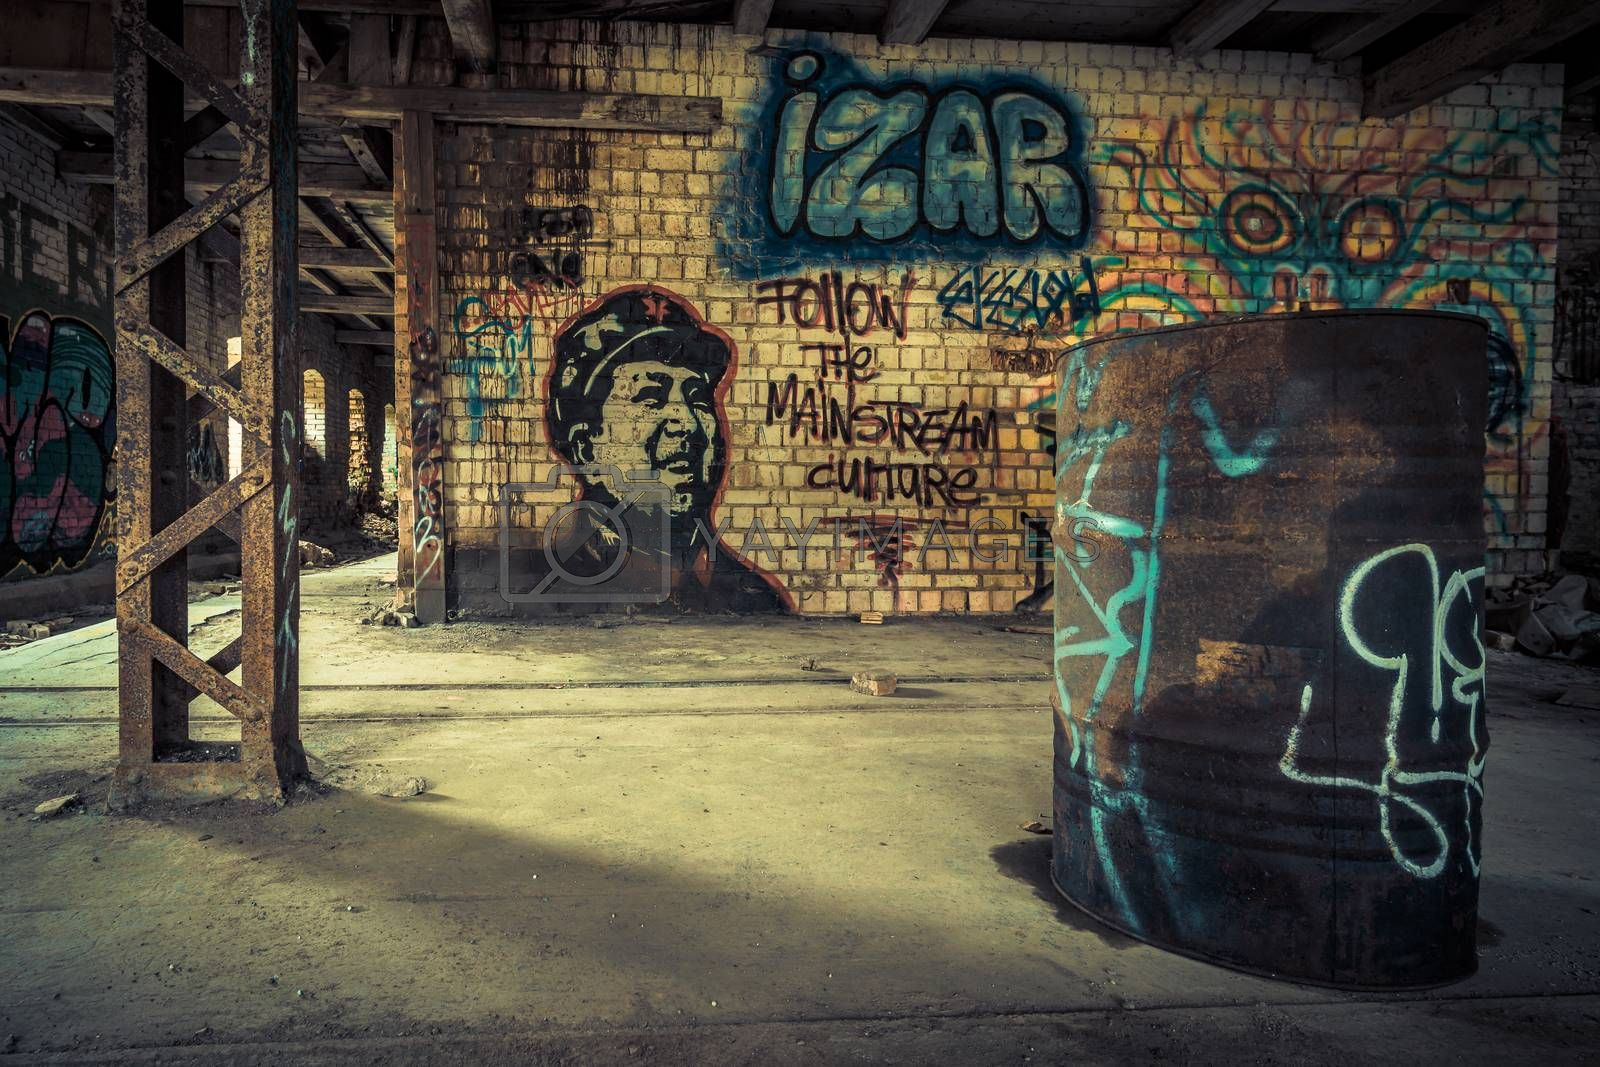 An old abandoned brick factory, a lost place with ancient history, vandalism and graffiti by mindscapephotos